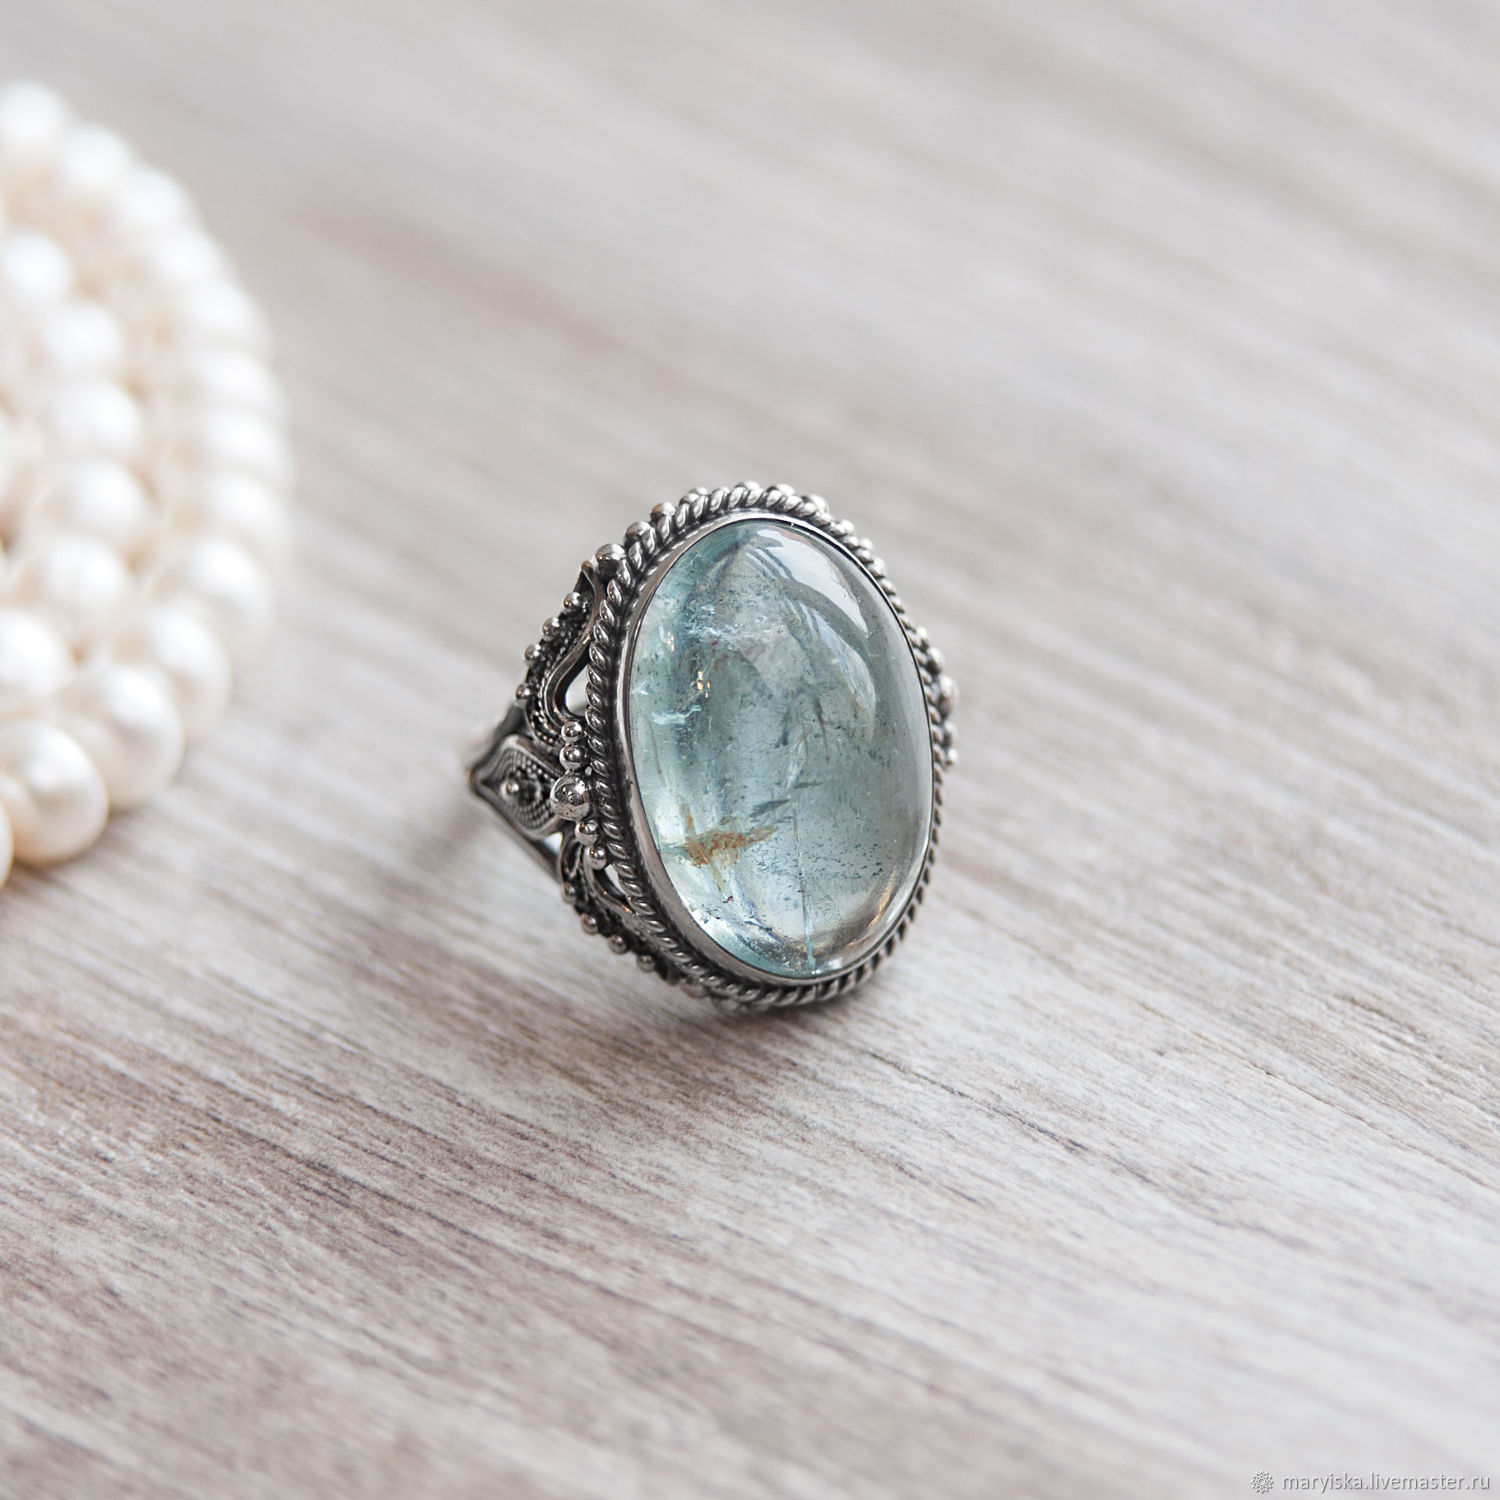 london stone skinner a aquamarine jewellery single bentley ring bond street